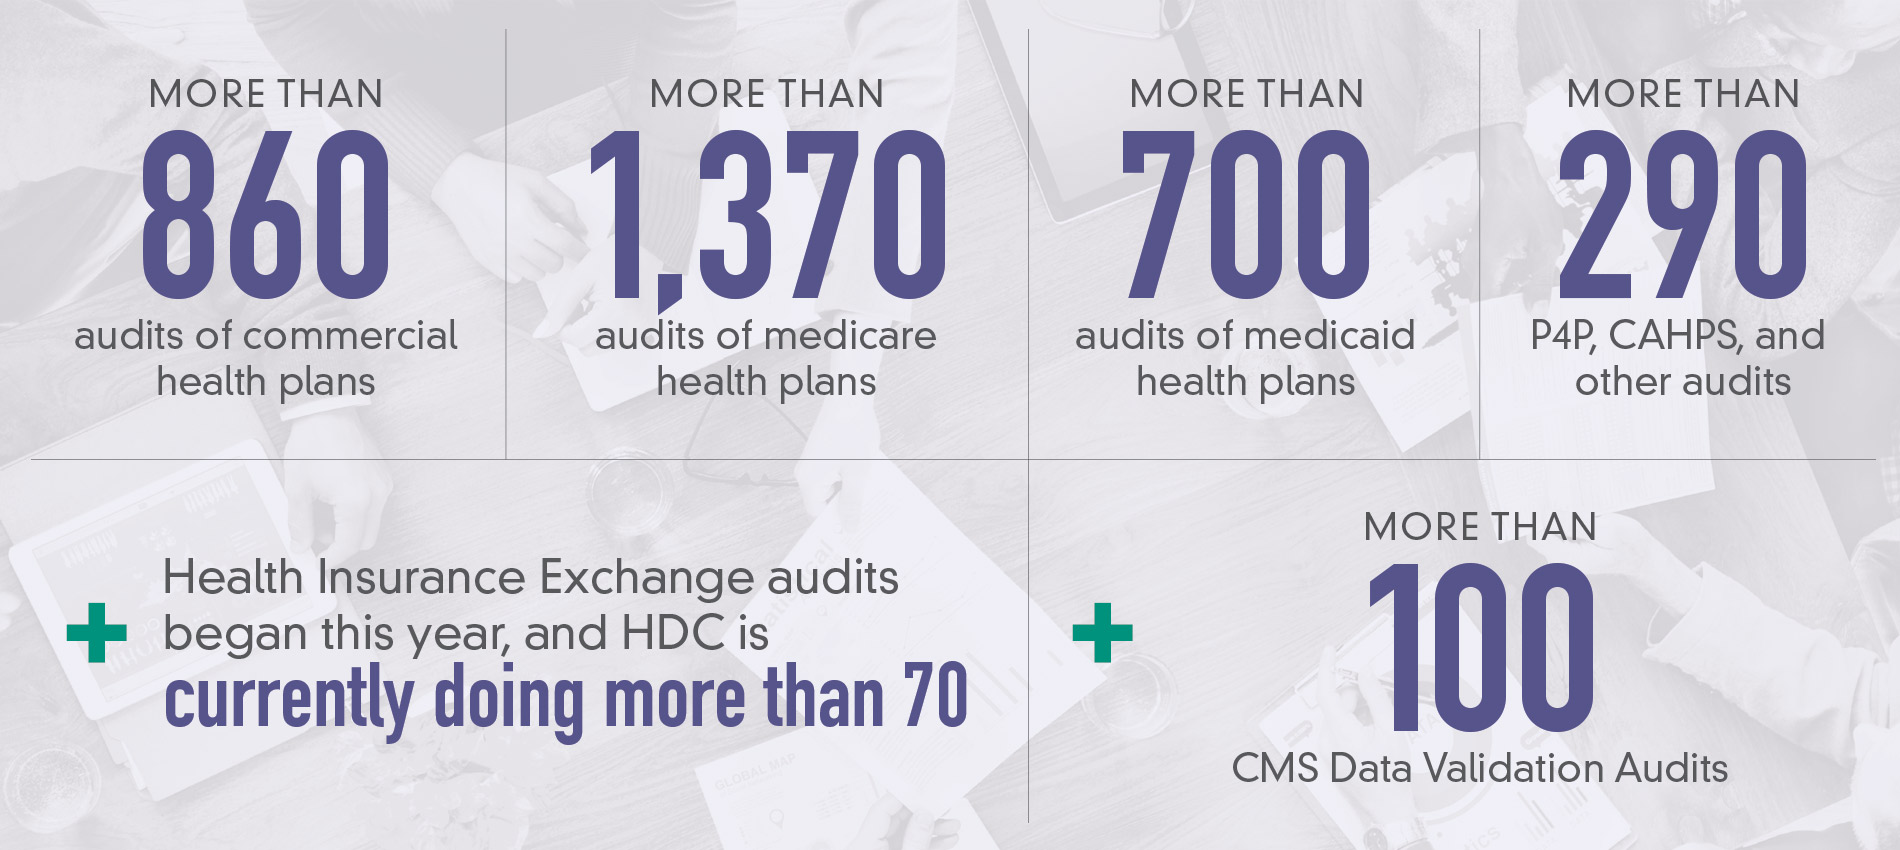 About healthcare data company healthcare data corporation hdc audit infographic xflitez Choice Image